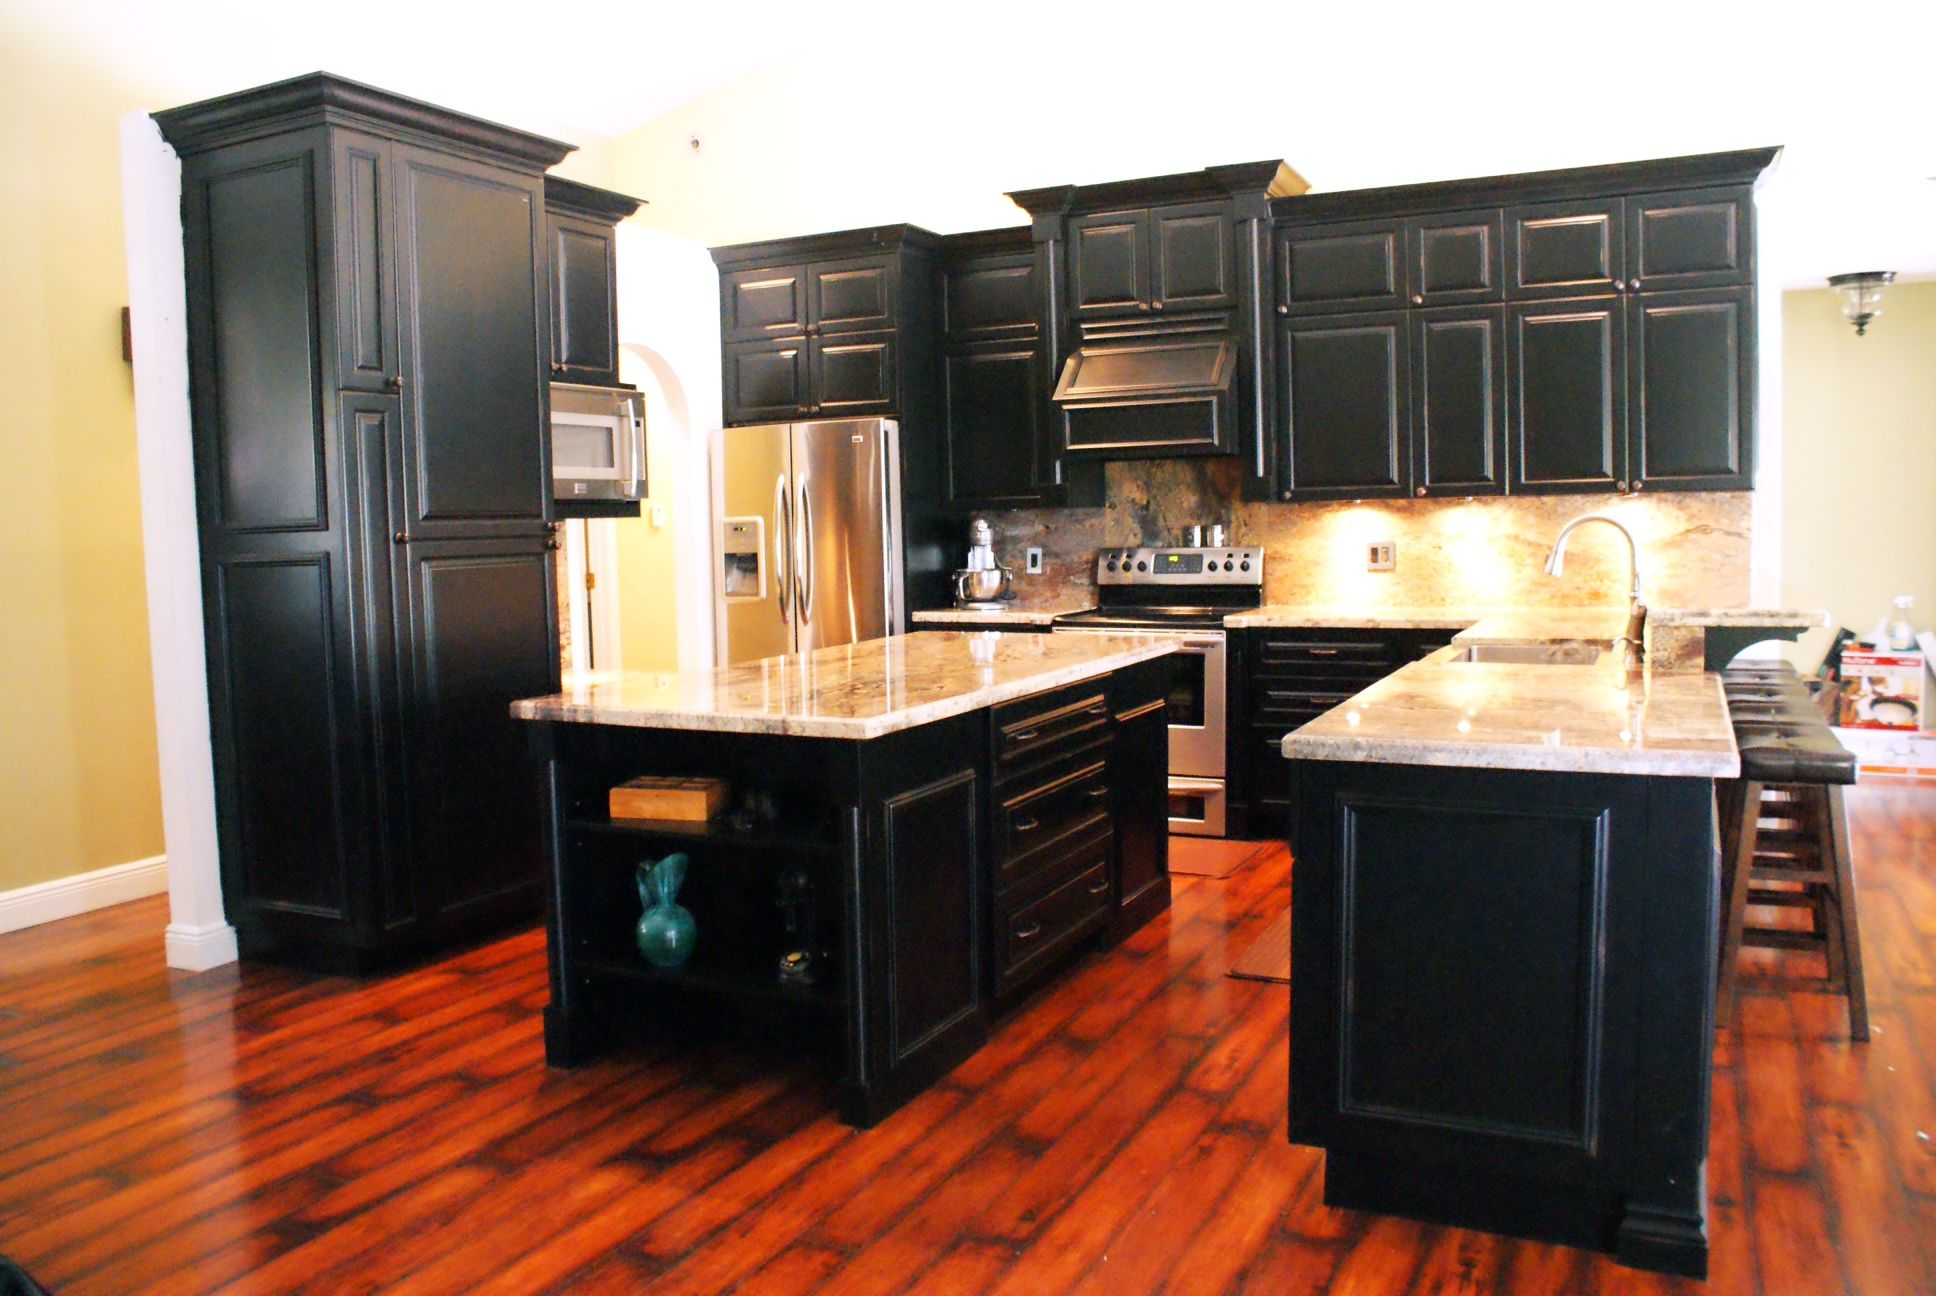 Black Distressed Cabinets Our Custom Built Kitchens Pinterest Black Distressed Cabinets